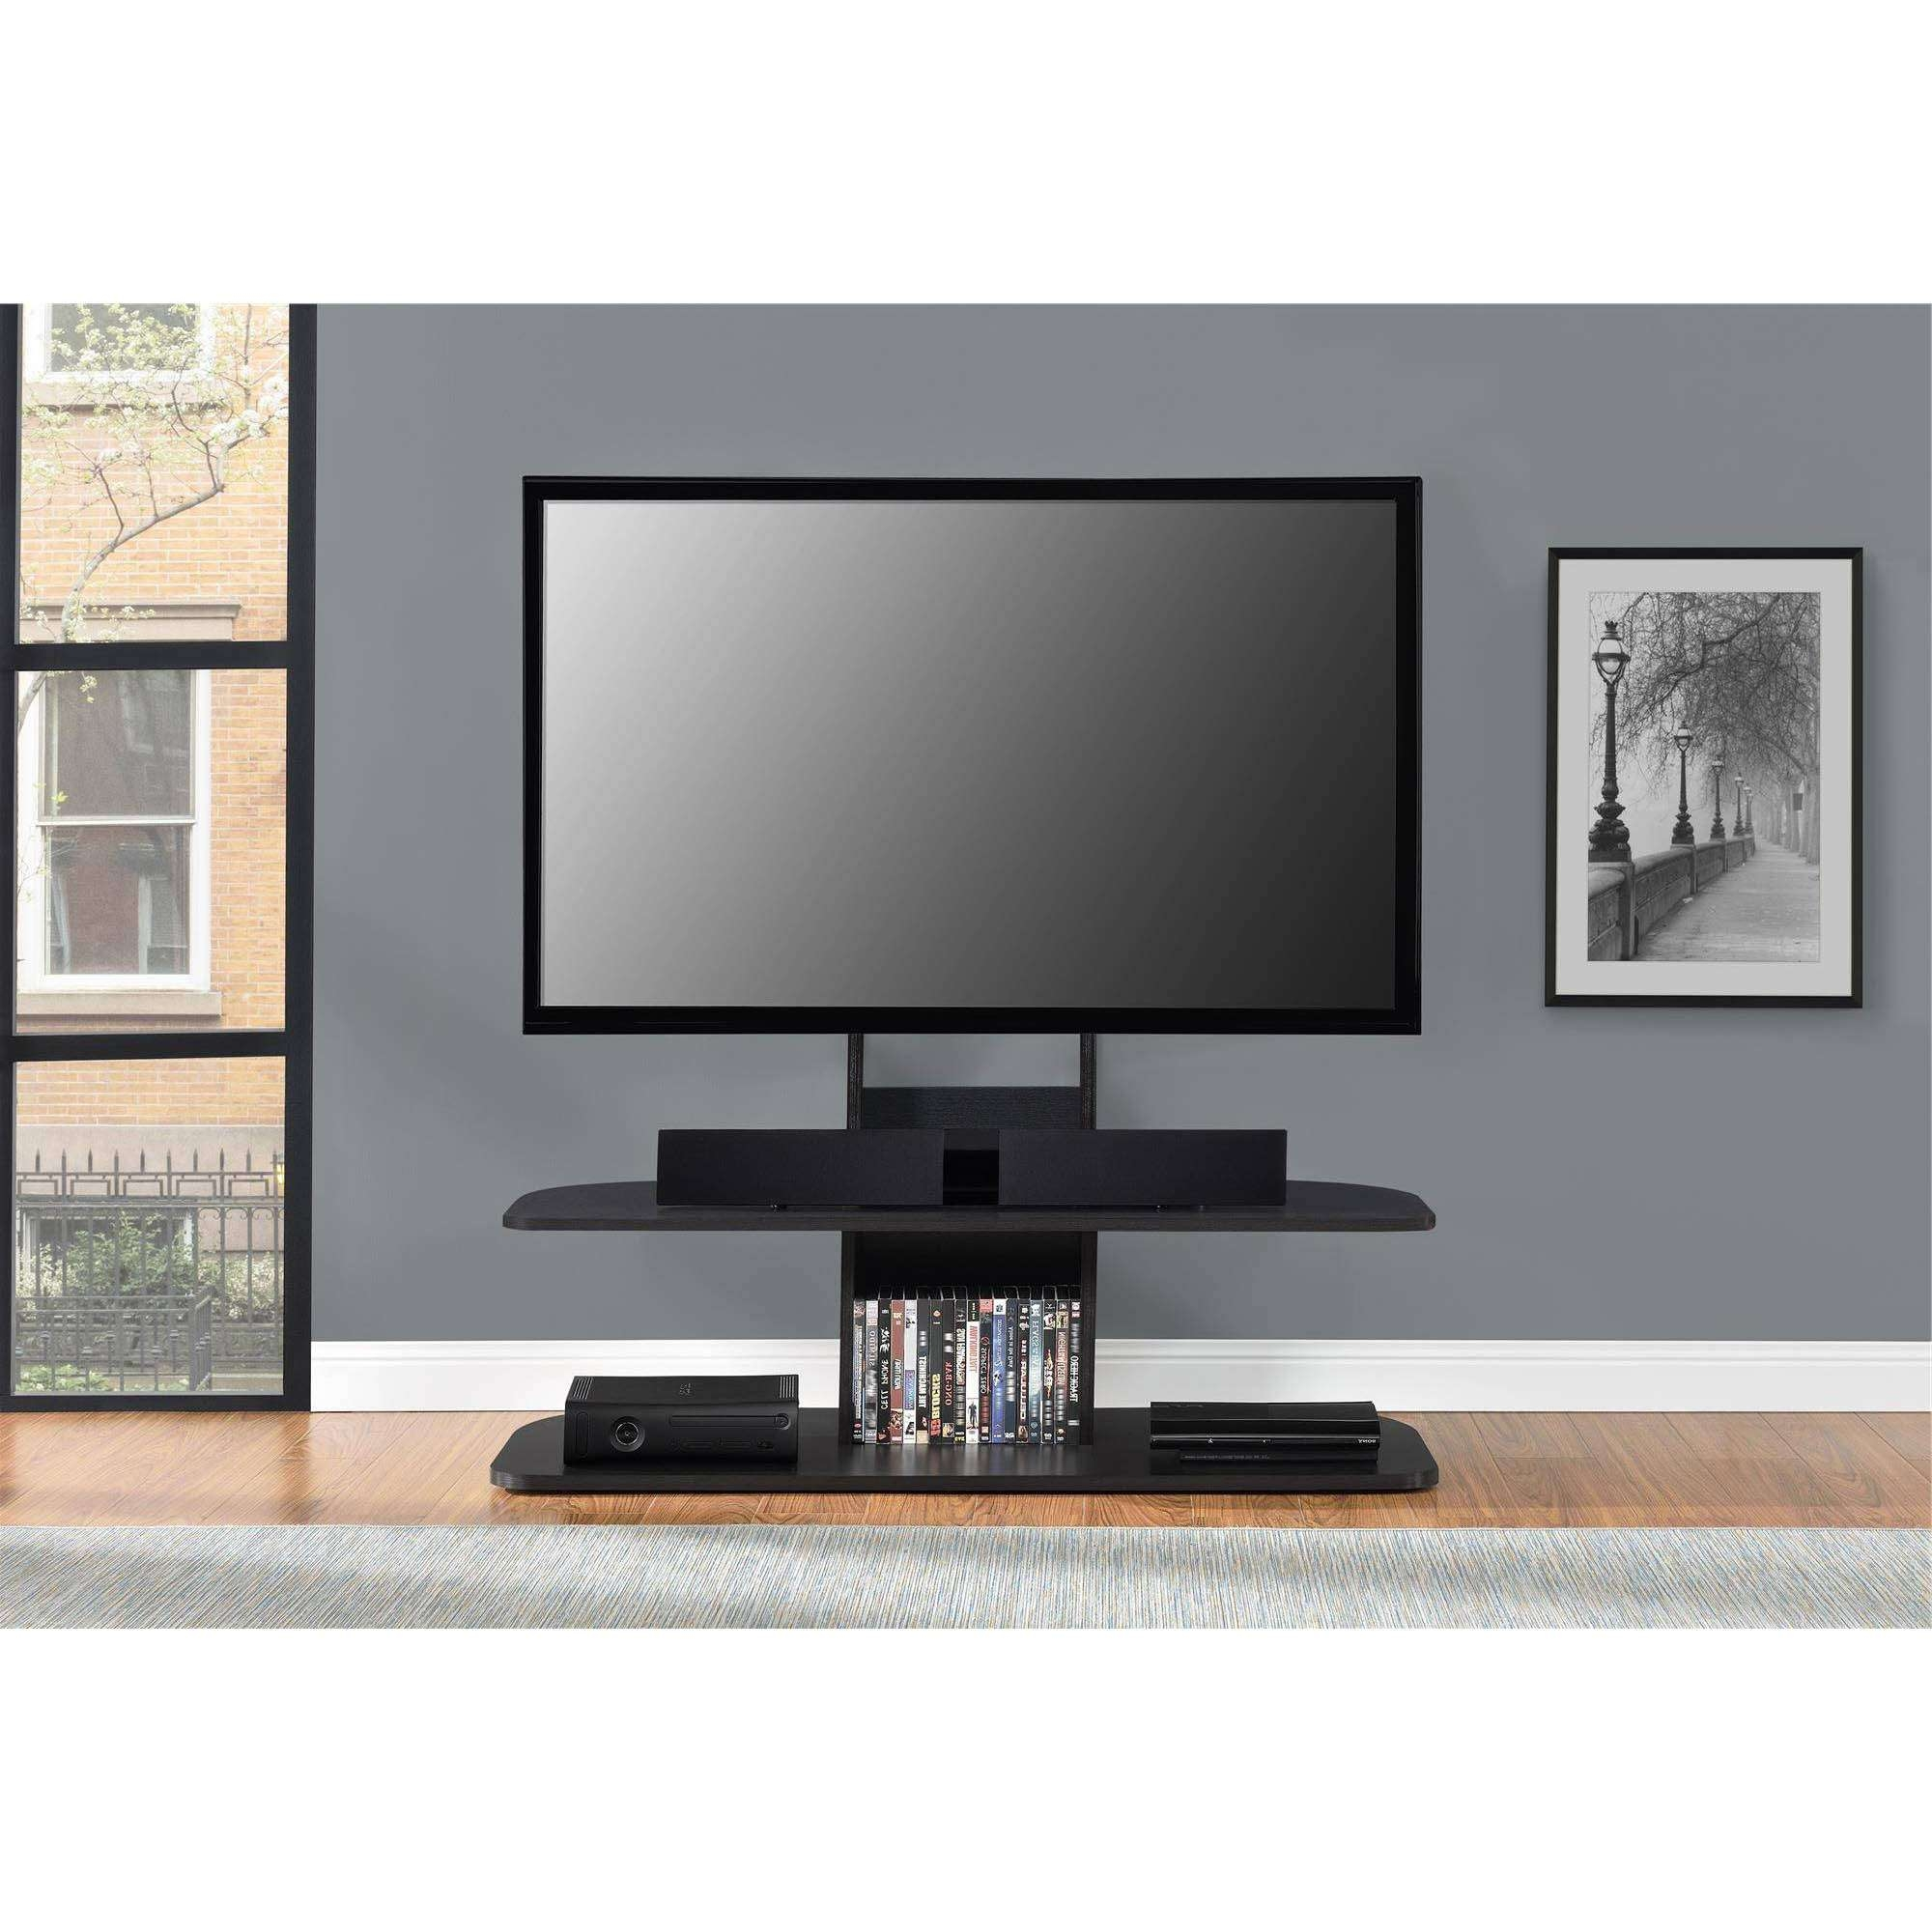 Tv Stands & Entertainment Centers – Walmart With Regard To Modern Tv Stands For 60 Inch Tvs (View 9 of 15)